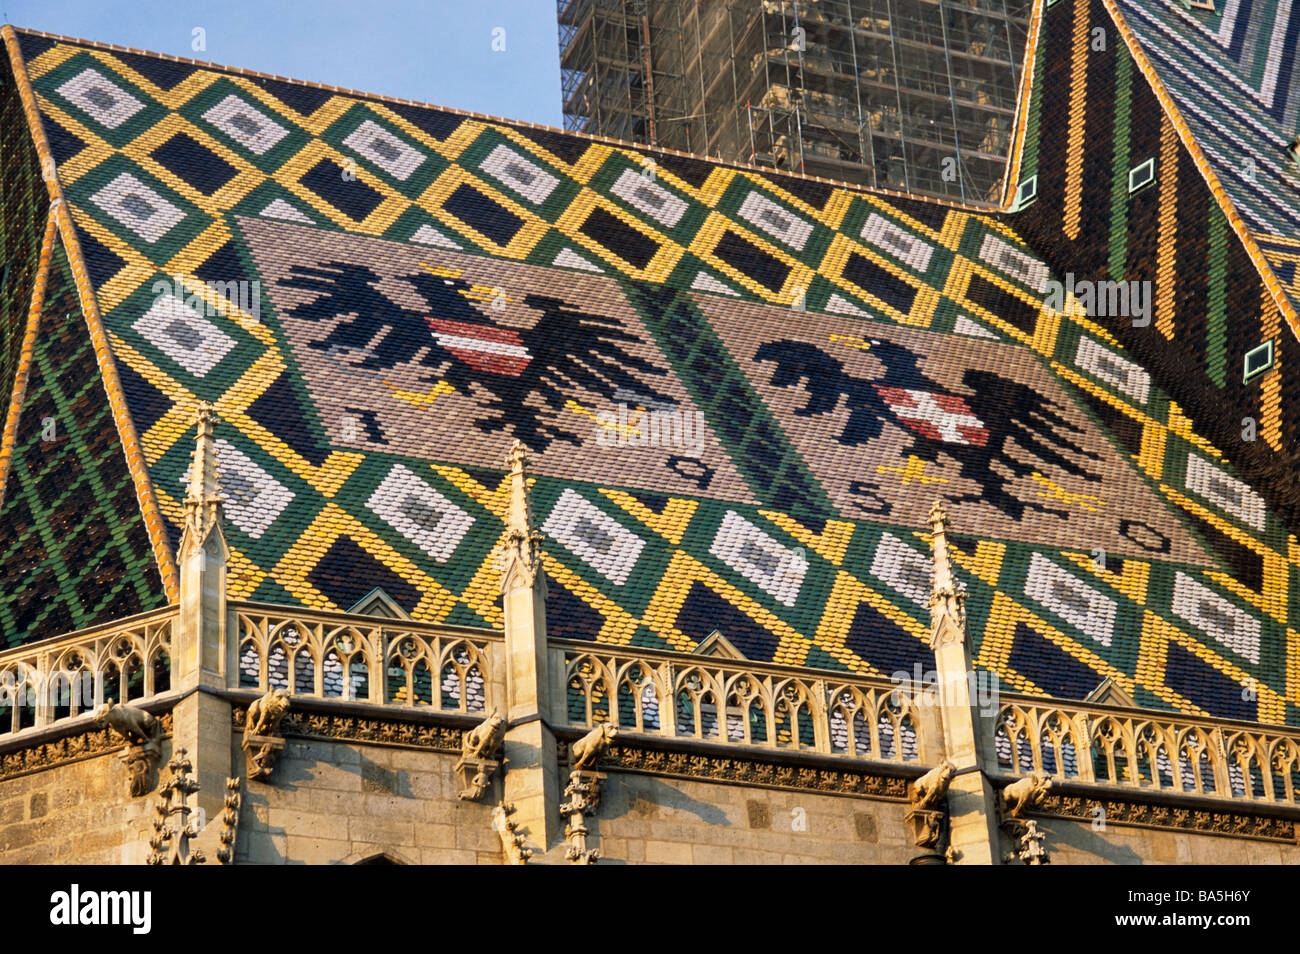 Habsburg emblem on roof of St Stephens Cathedral in Vienna Austria - Stock Image